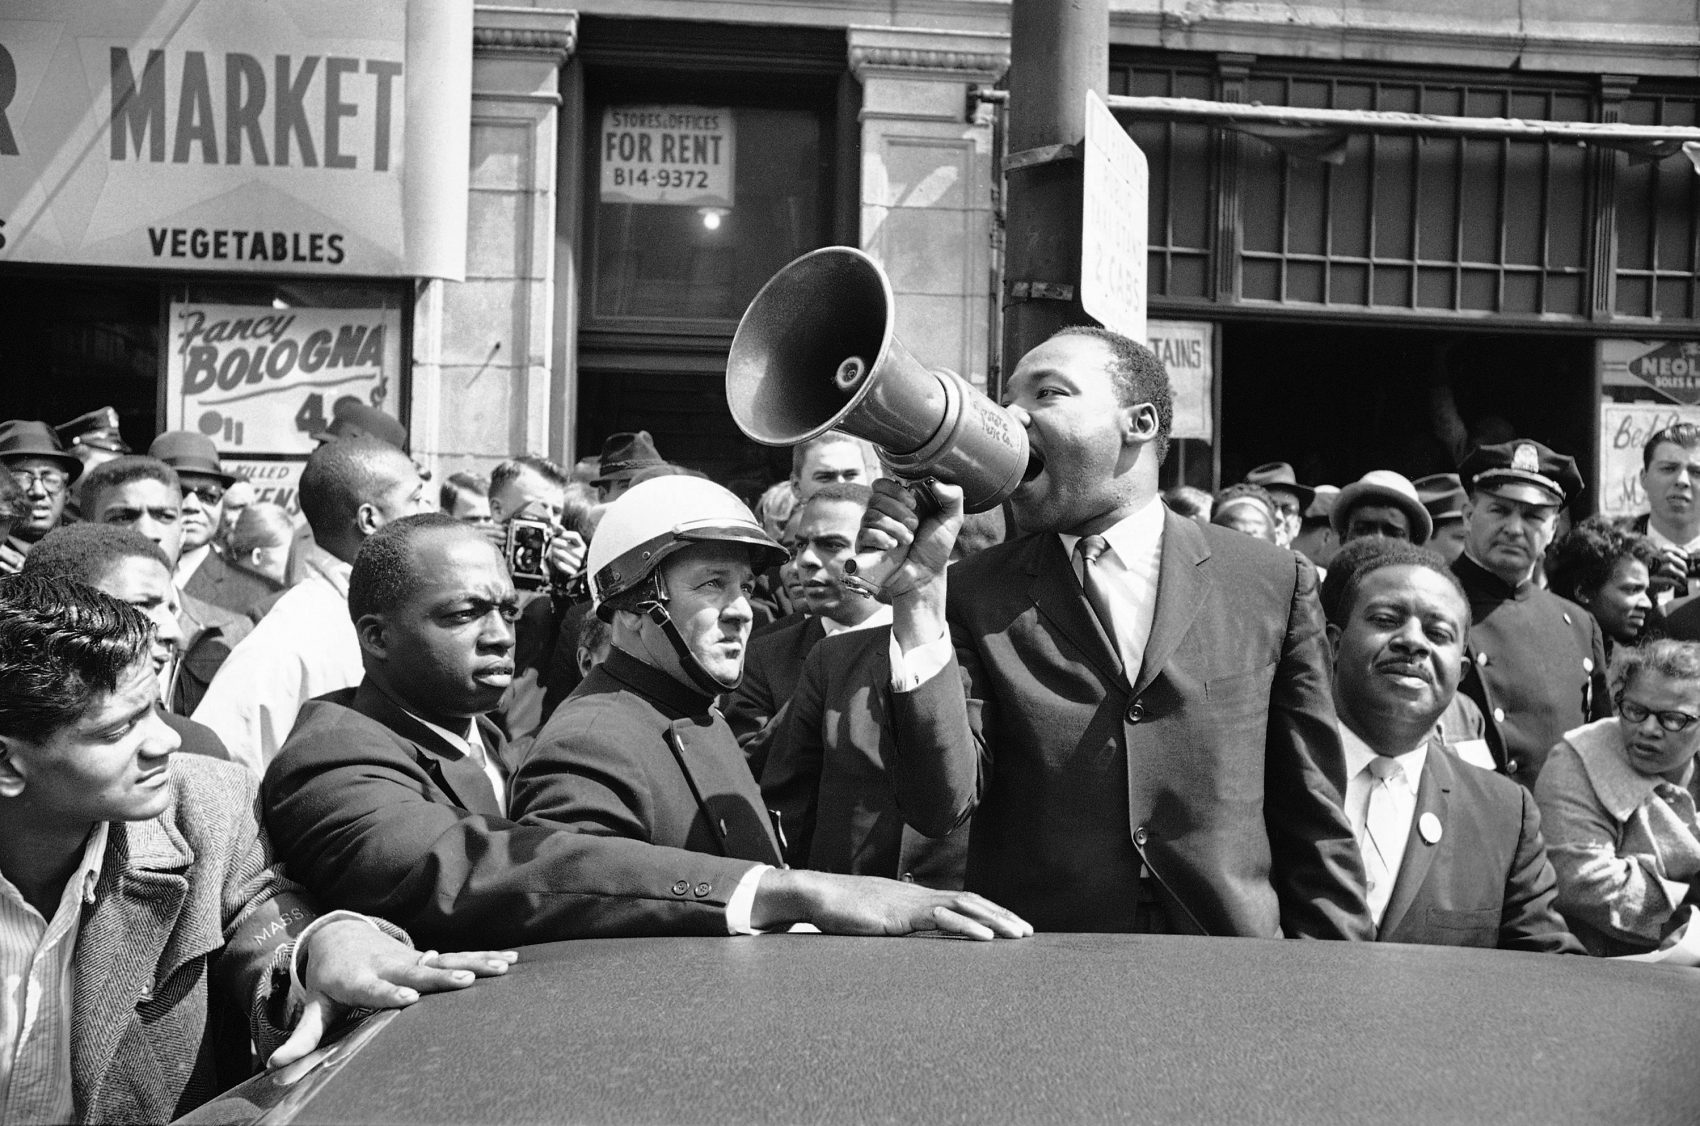 Dr. Martin Luther King Jr addresses a crowd with a bull horn in Roxbury on April 22, 1965. (AP)